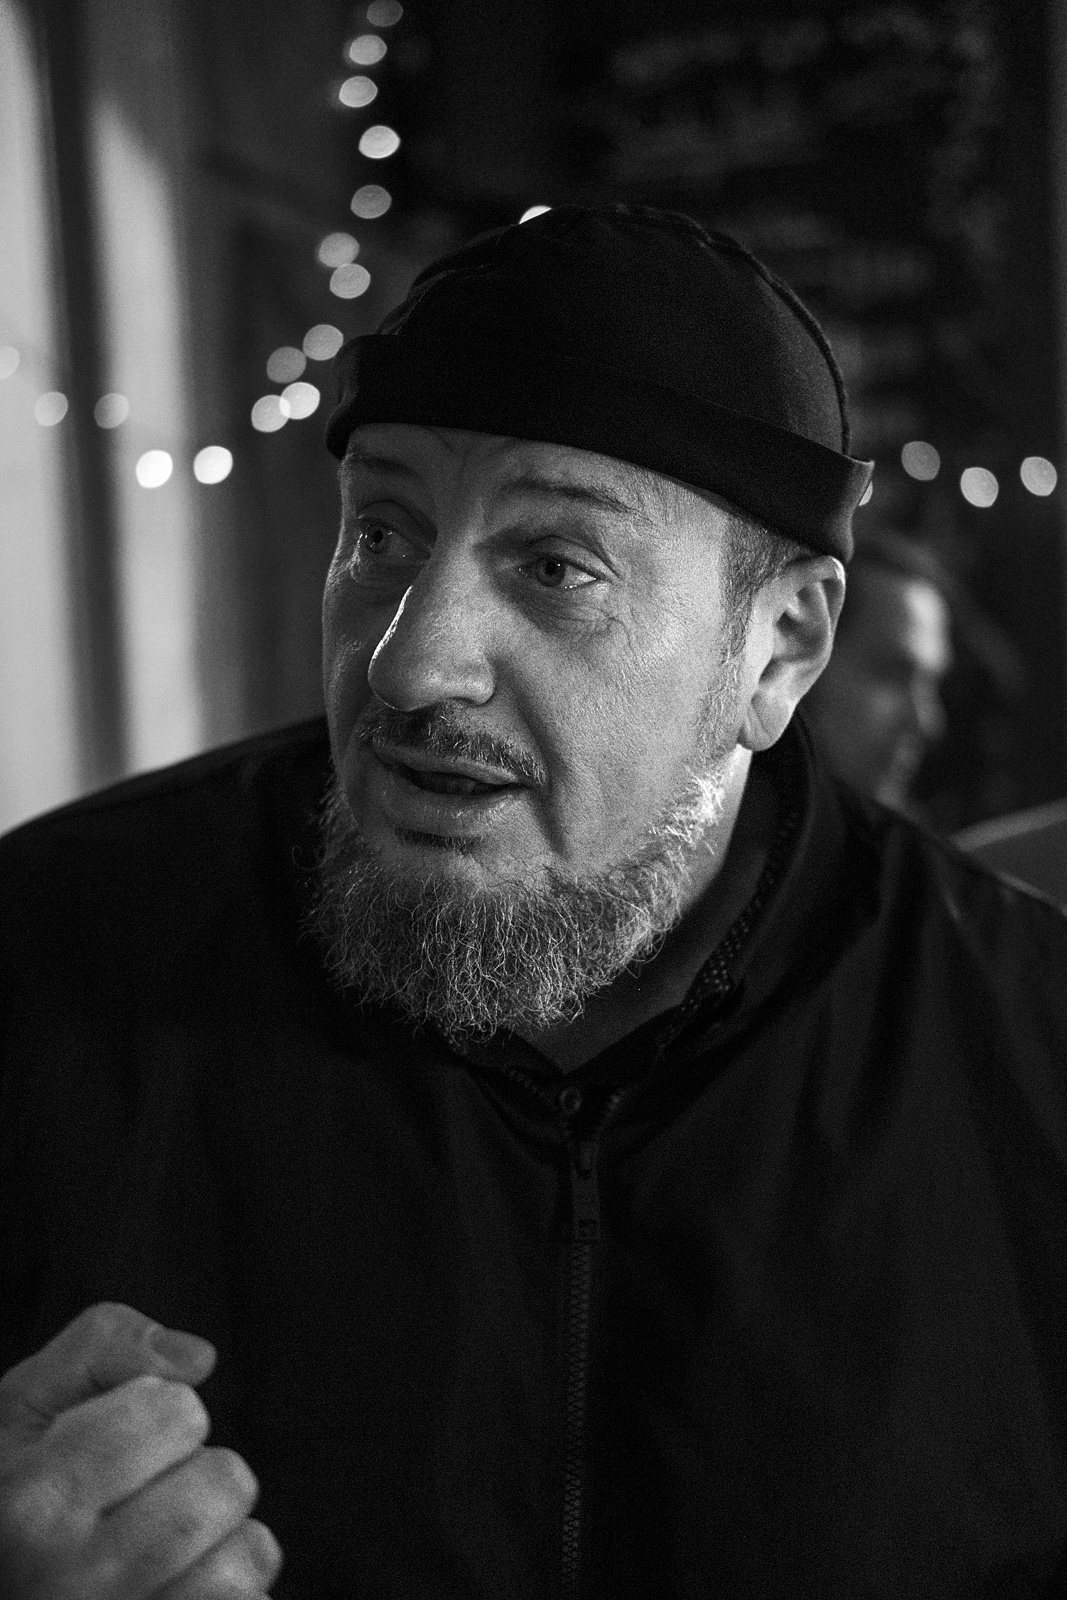 Man with beard wearing hat looking sideways in conversation candid black and white portrait Brighton UK © P. Maton 2018 eyeteeth.net